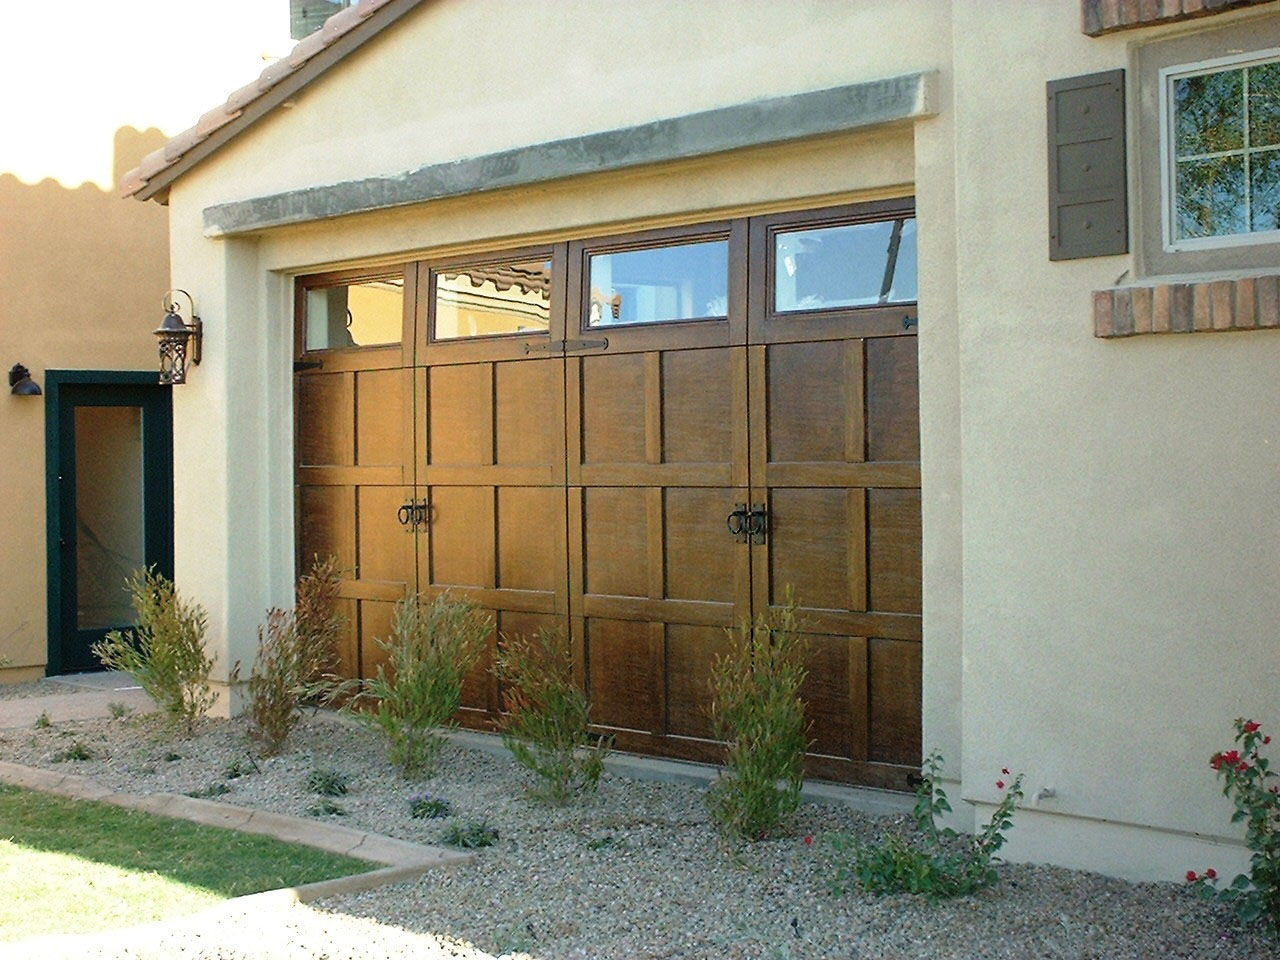 960 #936C38 Garage Door Windows The Garage Door Weblog pic First Garage Doors 36211280